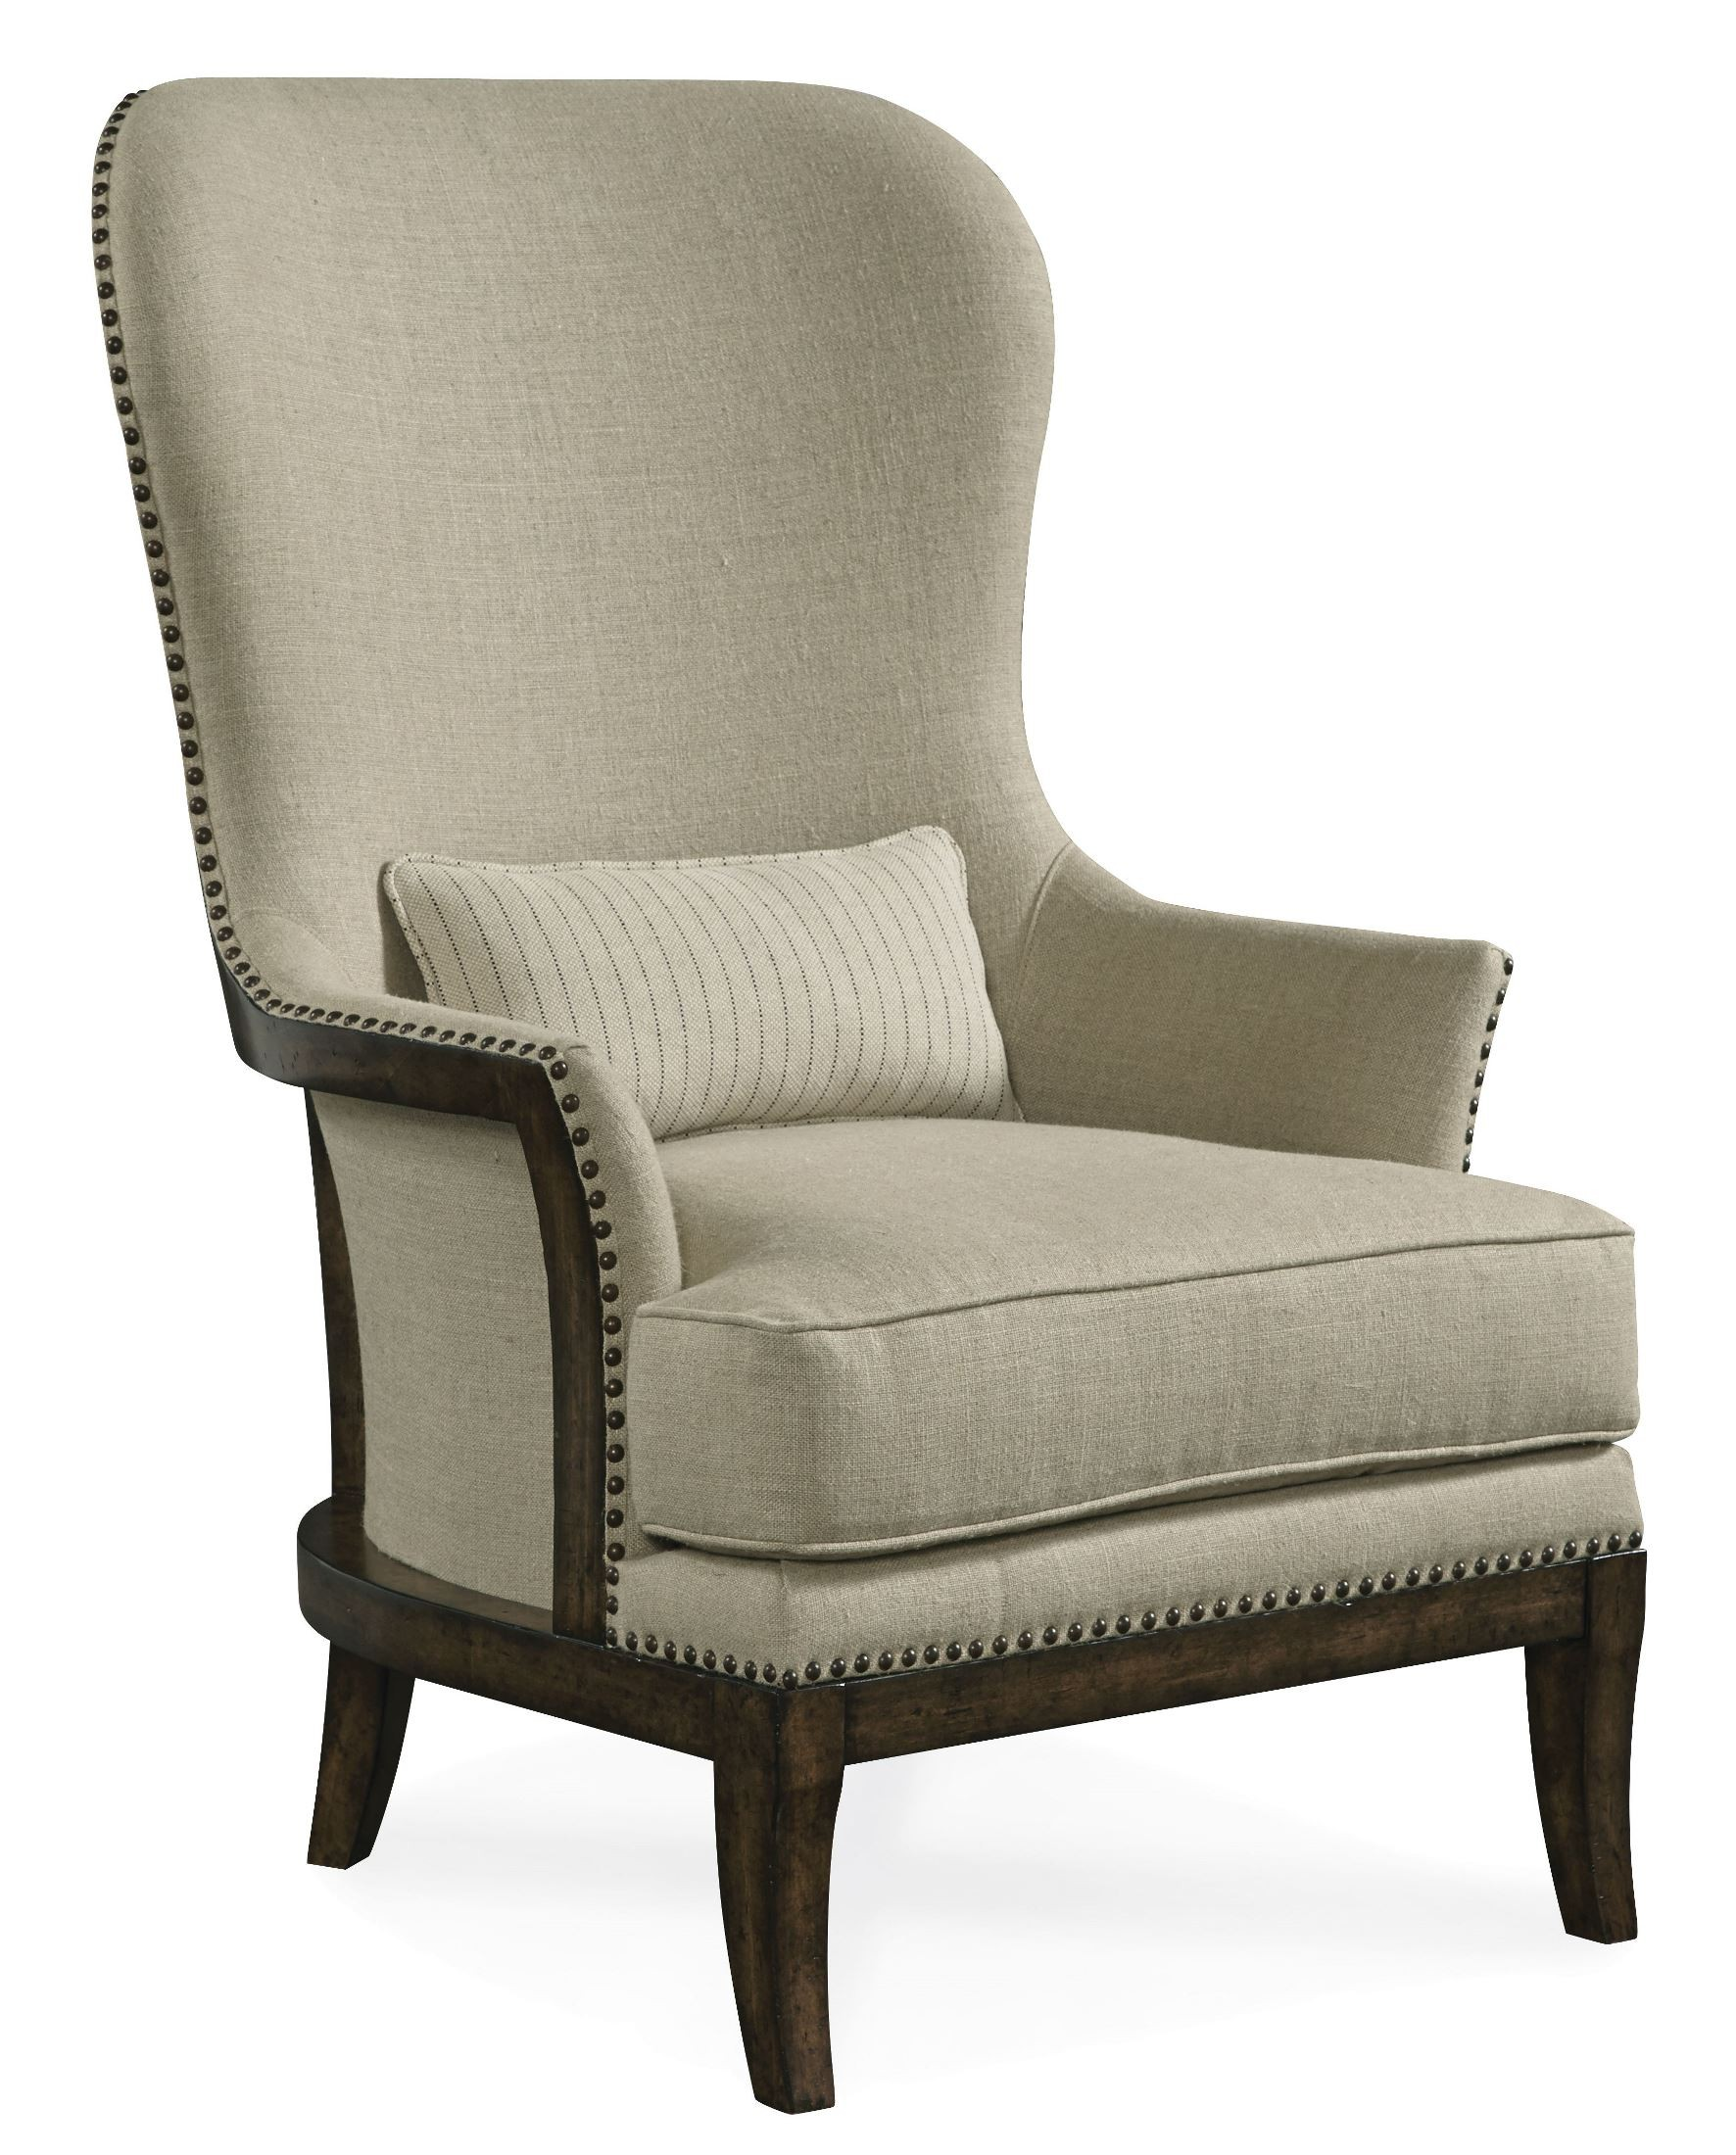 What Is An Accent Chair Used For: Logan Exposed Wood Back Arroyo Accent Chair From ART